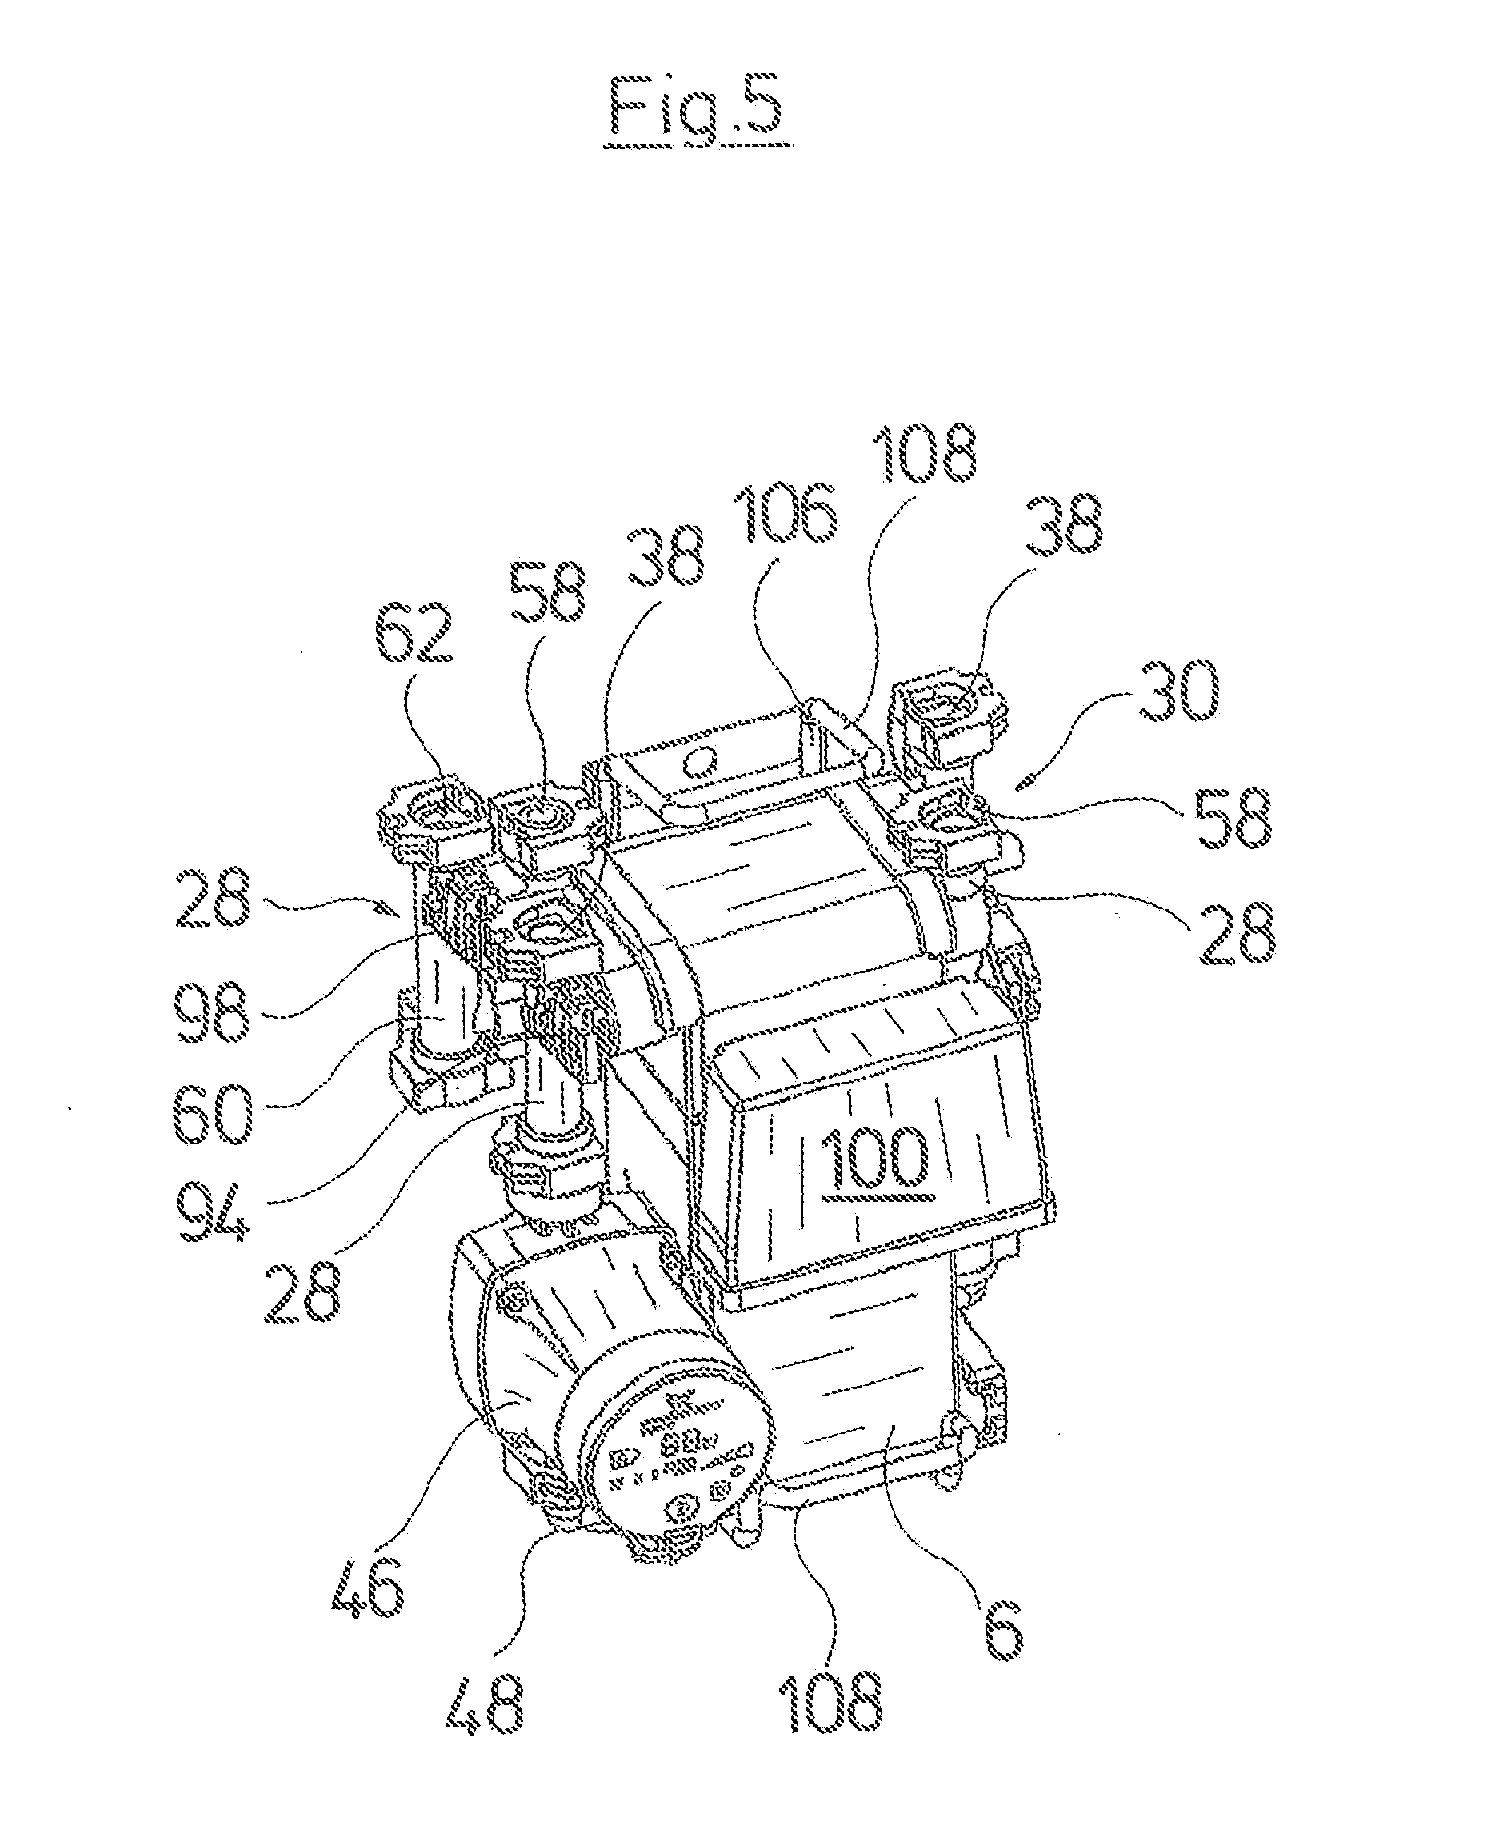 tankless water heater piping diagram 2002 dodge ram 1500 ignition coil wiring navien boiler get free image about